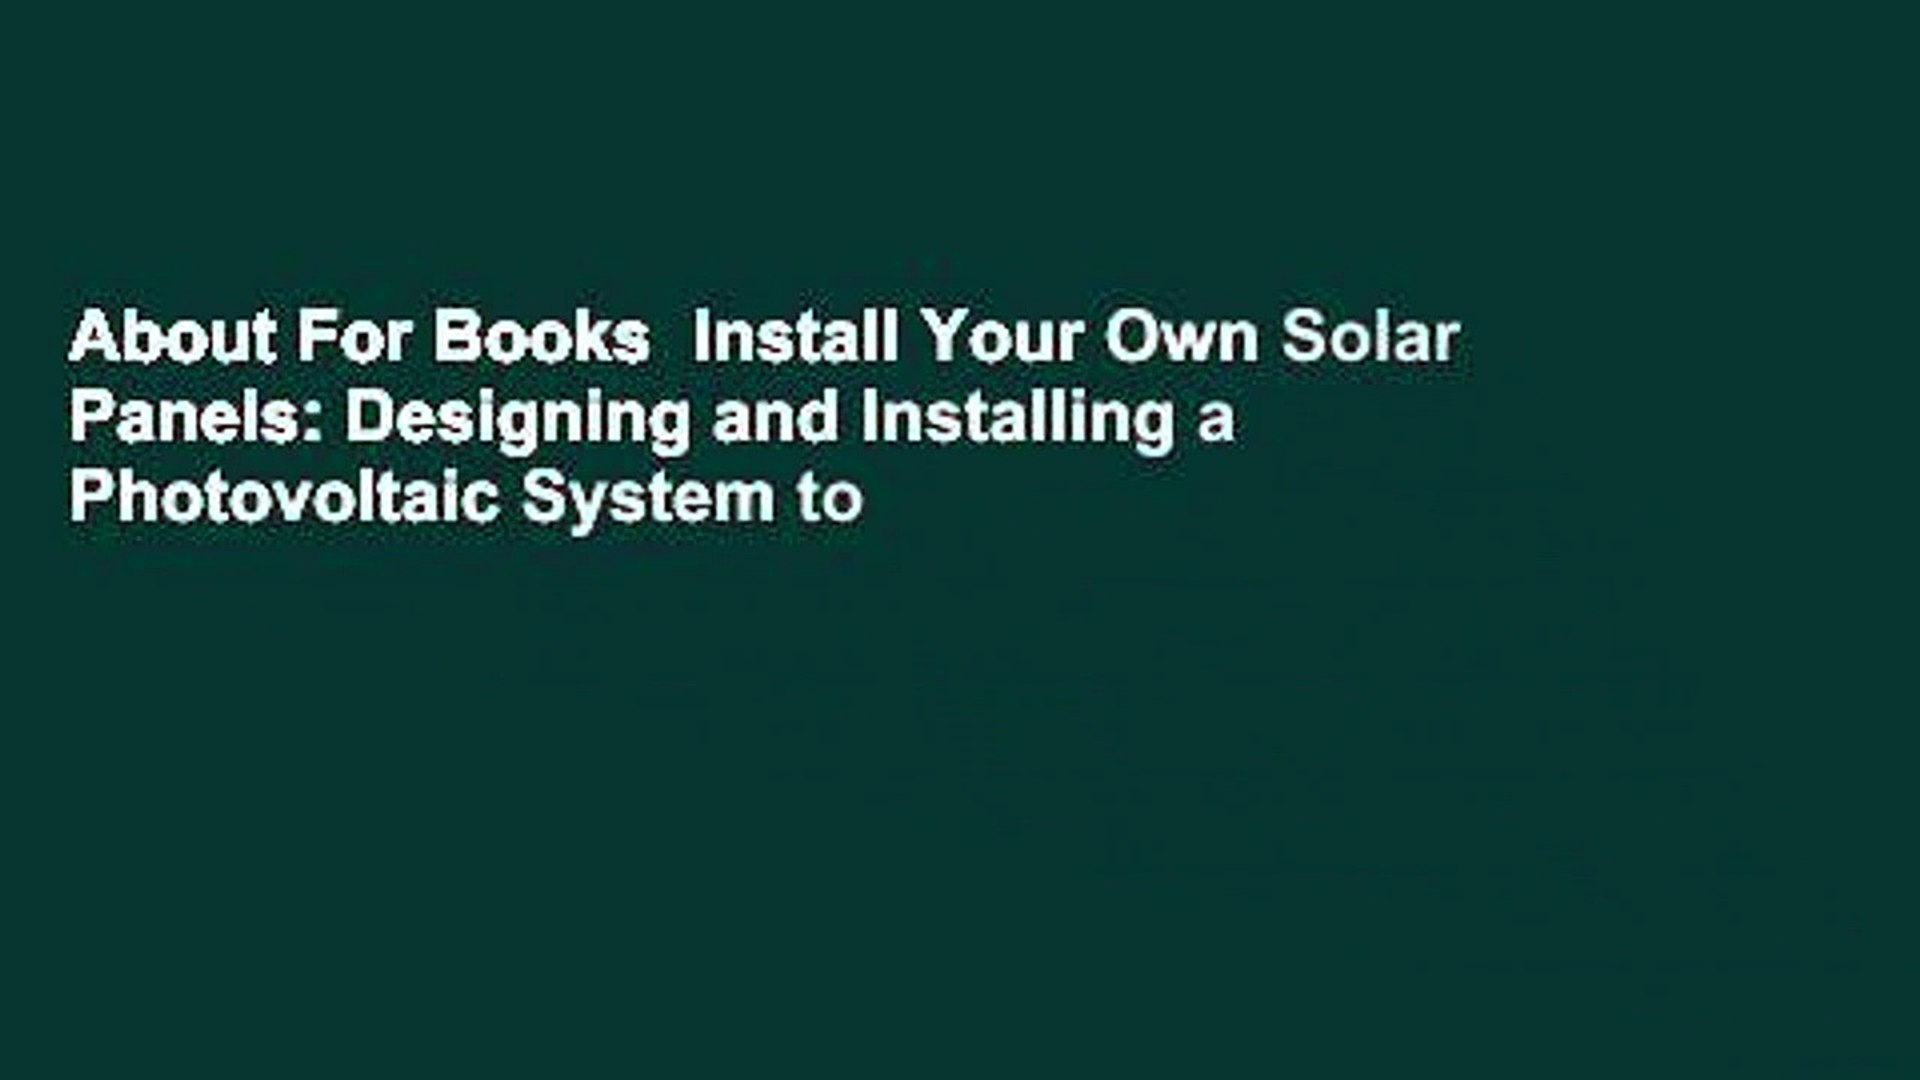 About For Books Install Your Own Solar Panels Designing And